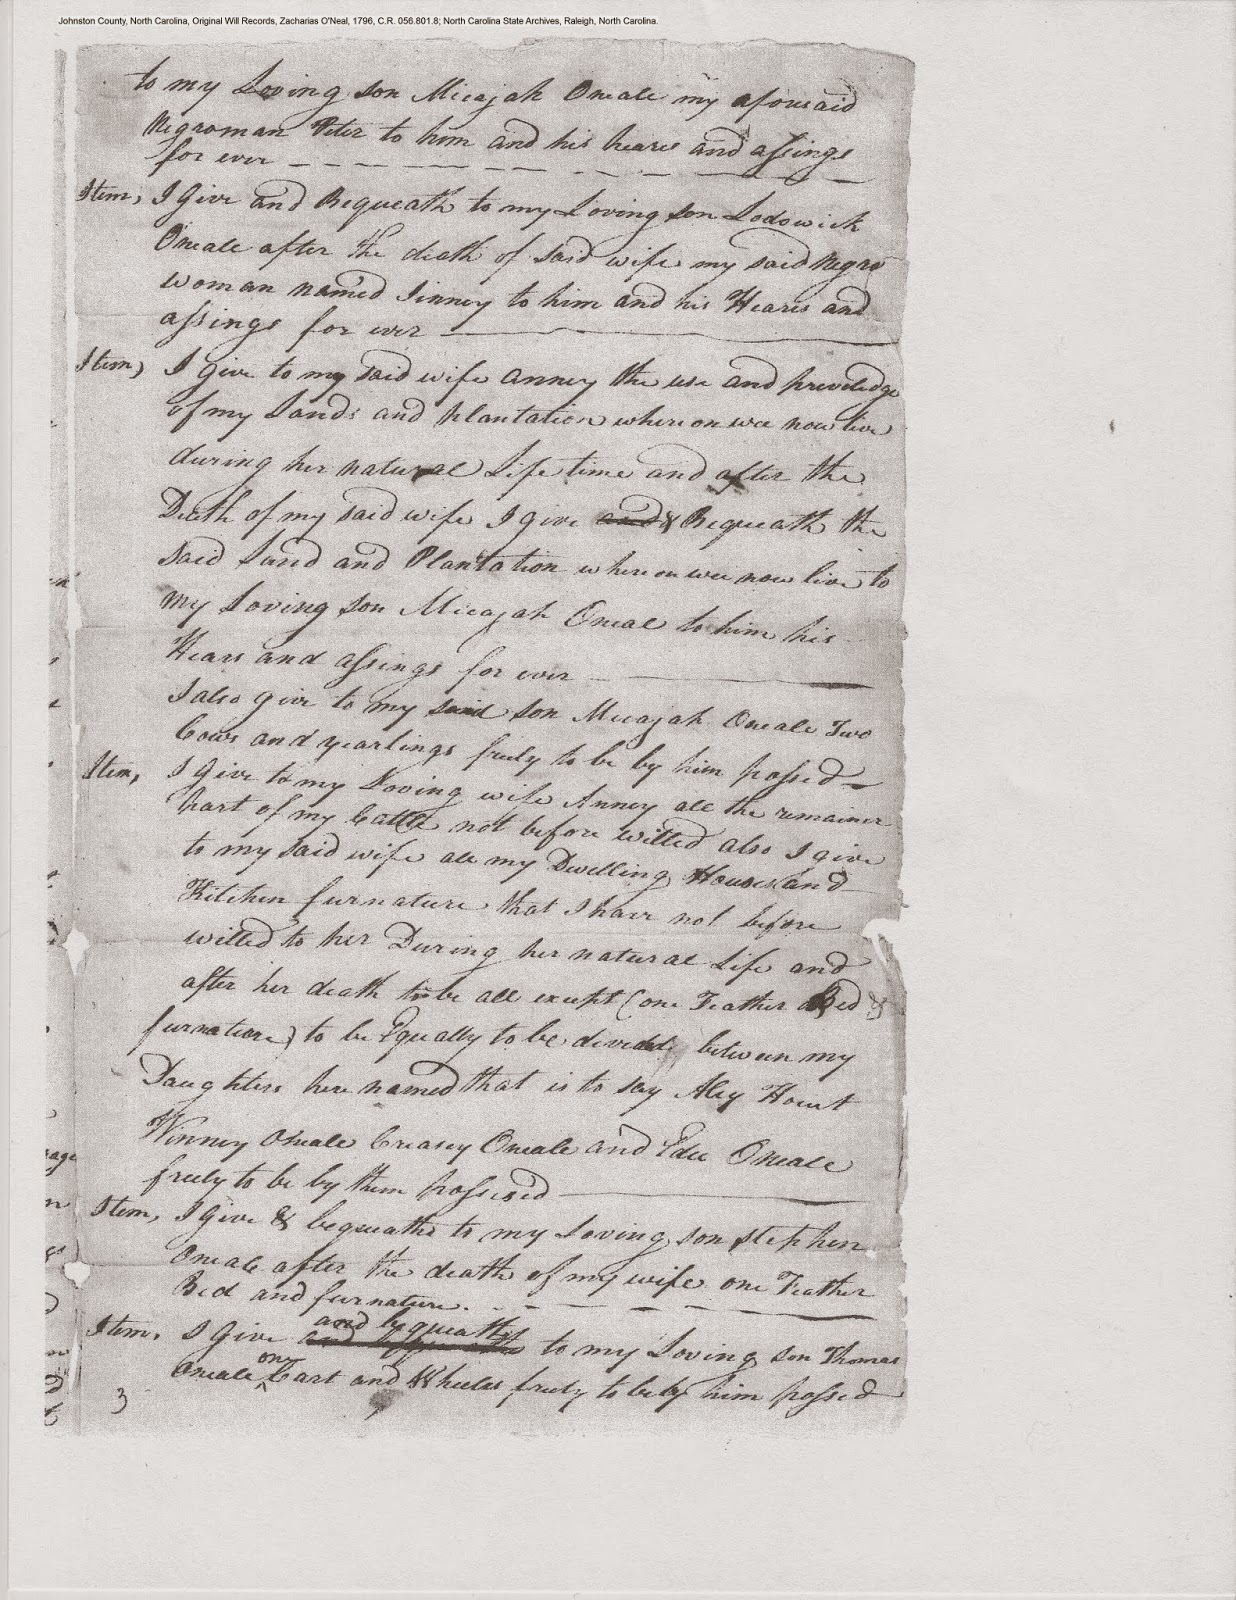 Zachariah O'Neal's will, Johnston Co., NC, 1796, p. 3